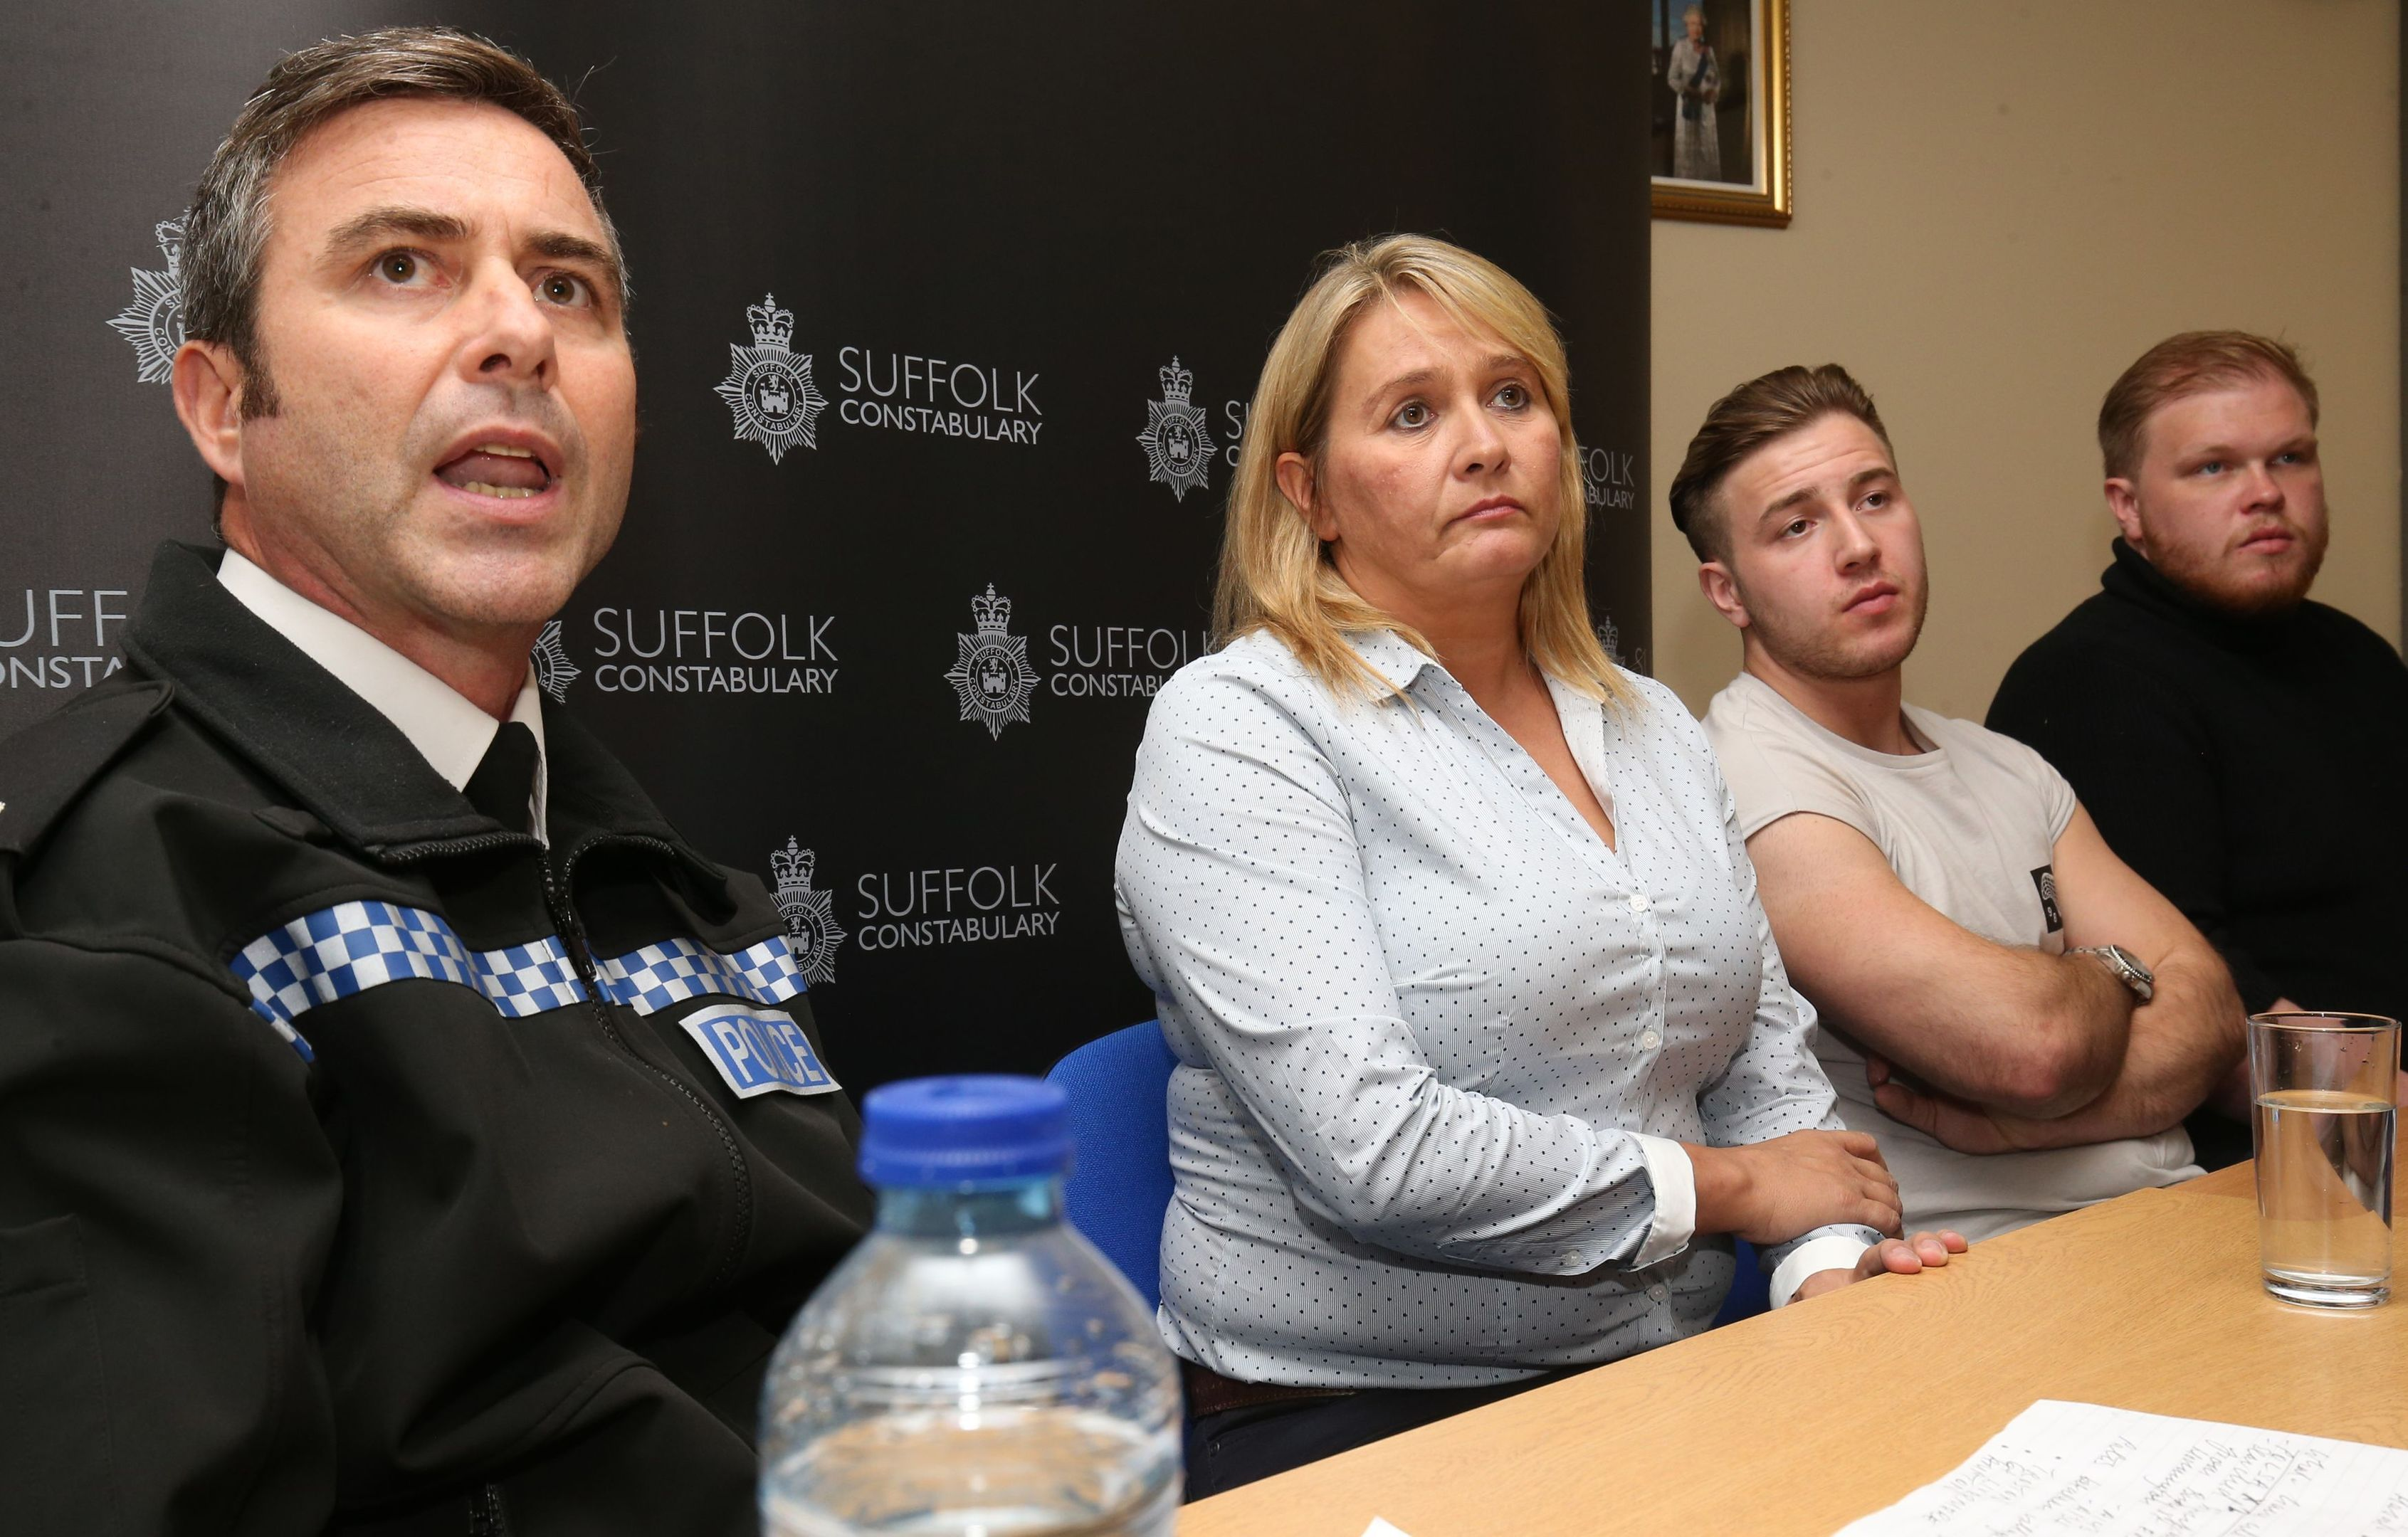 (left to right) Acting Chief Superintendent Kim Warner of Suffolk Police speaks alongside mother of missing 23-year-old Corrie McKeague, Nicola Urquhart and his brothers Darroch and Makeyan McKeague, during a press conference  at Bury St Edmunds Police Station in Suffolk.